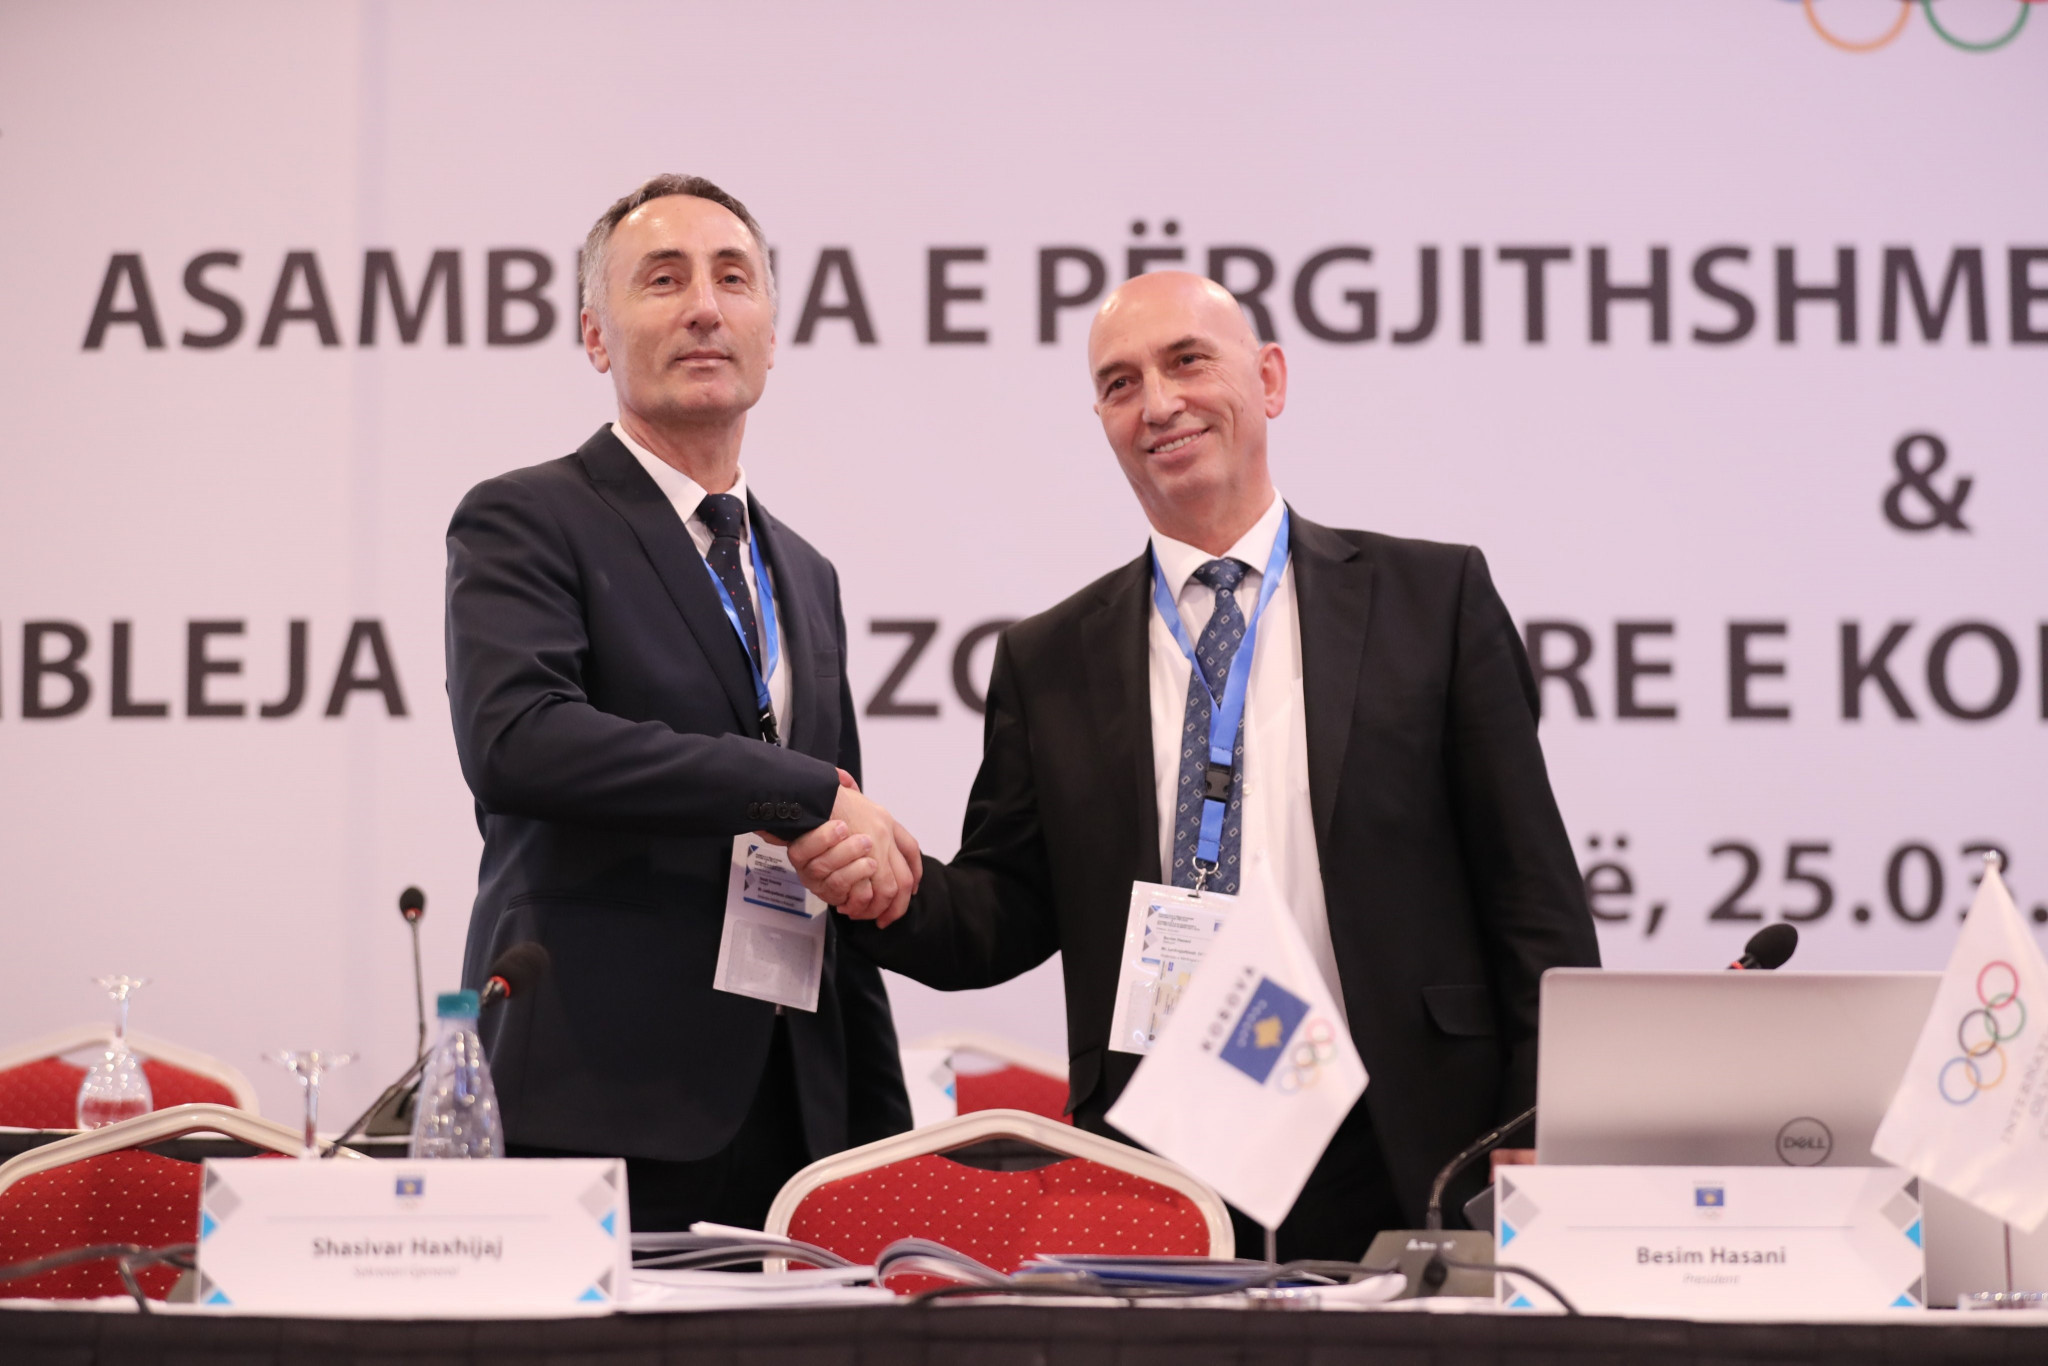 Ismet Krasniqi, left, has succeeded Besim Hasani as Kosovo Olympic Committee President ©Kosovo Olympic Committee